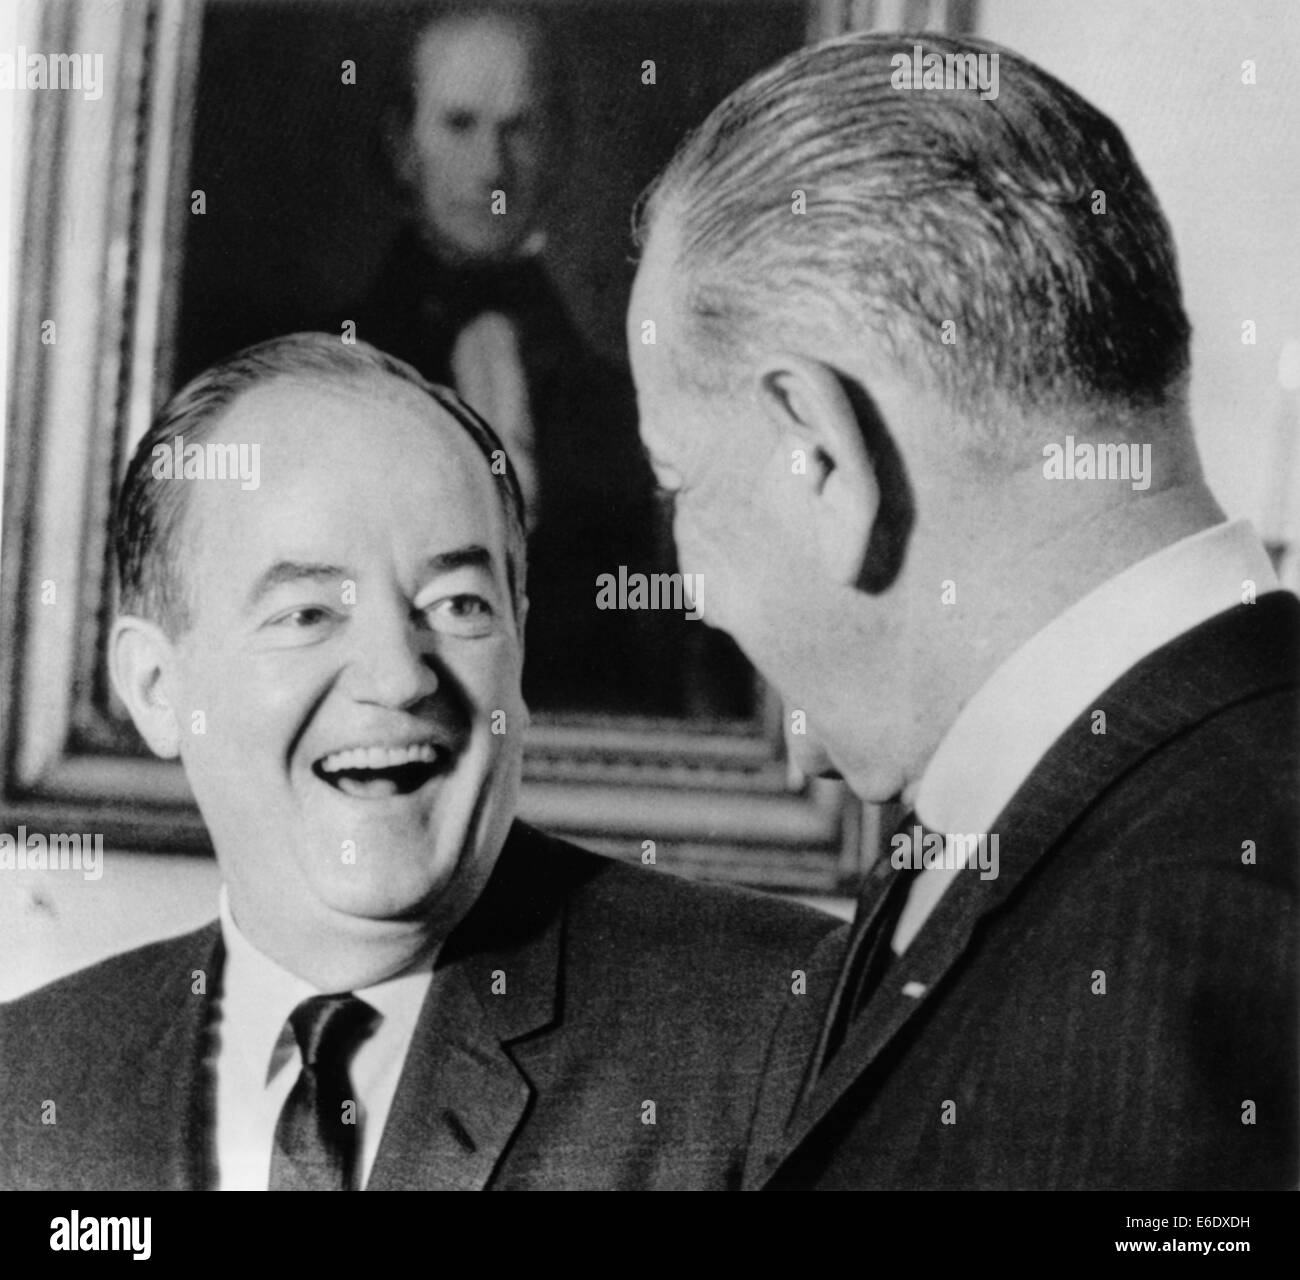 Vice President Hubert Humphrey, Observing his 55th Birthday, Being Congratulated by President Lyndon Johnson at - Stock Image